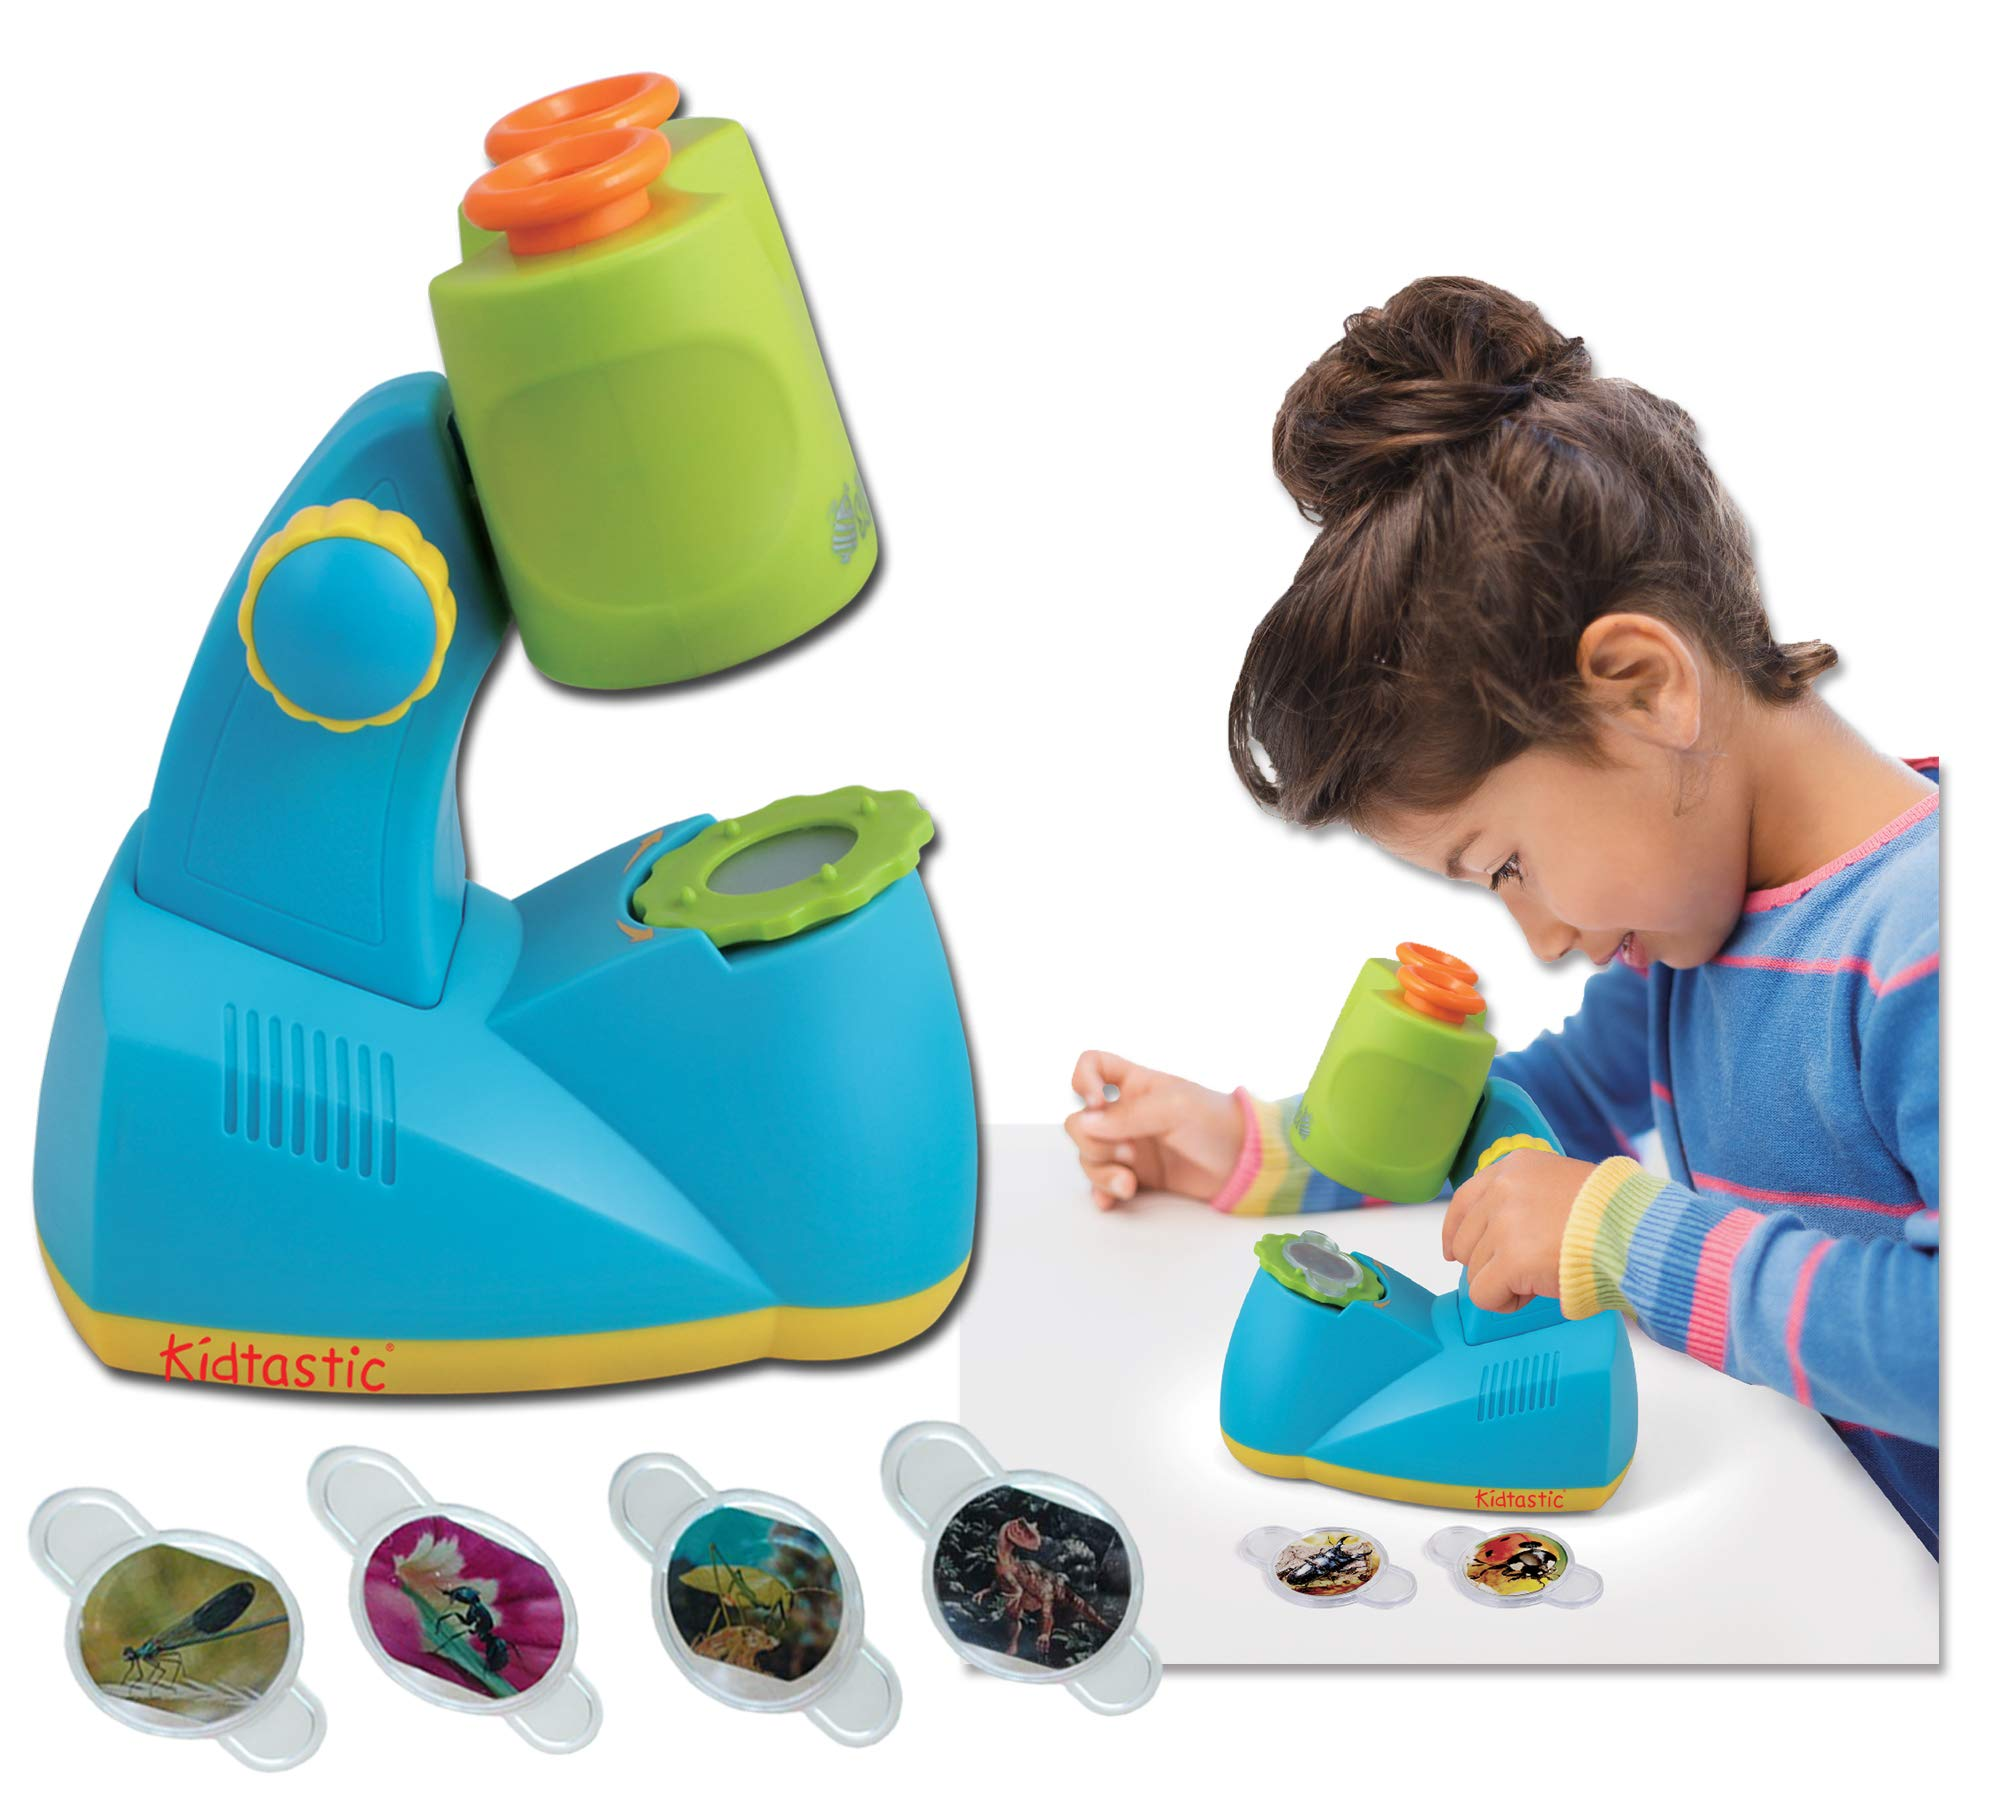 Kidtastic Microscope Science Kit for Kids - Fun Learning Toys for Preschoolers - STEM Toy for 3 Year olds - with 12 Slides Animals & Nature, 8X Zoom, LED Light - for Ages 3, 4, 5, 6 and up by Kidtastic